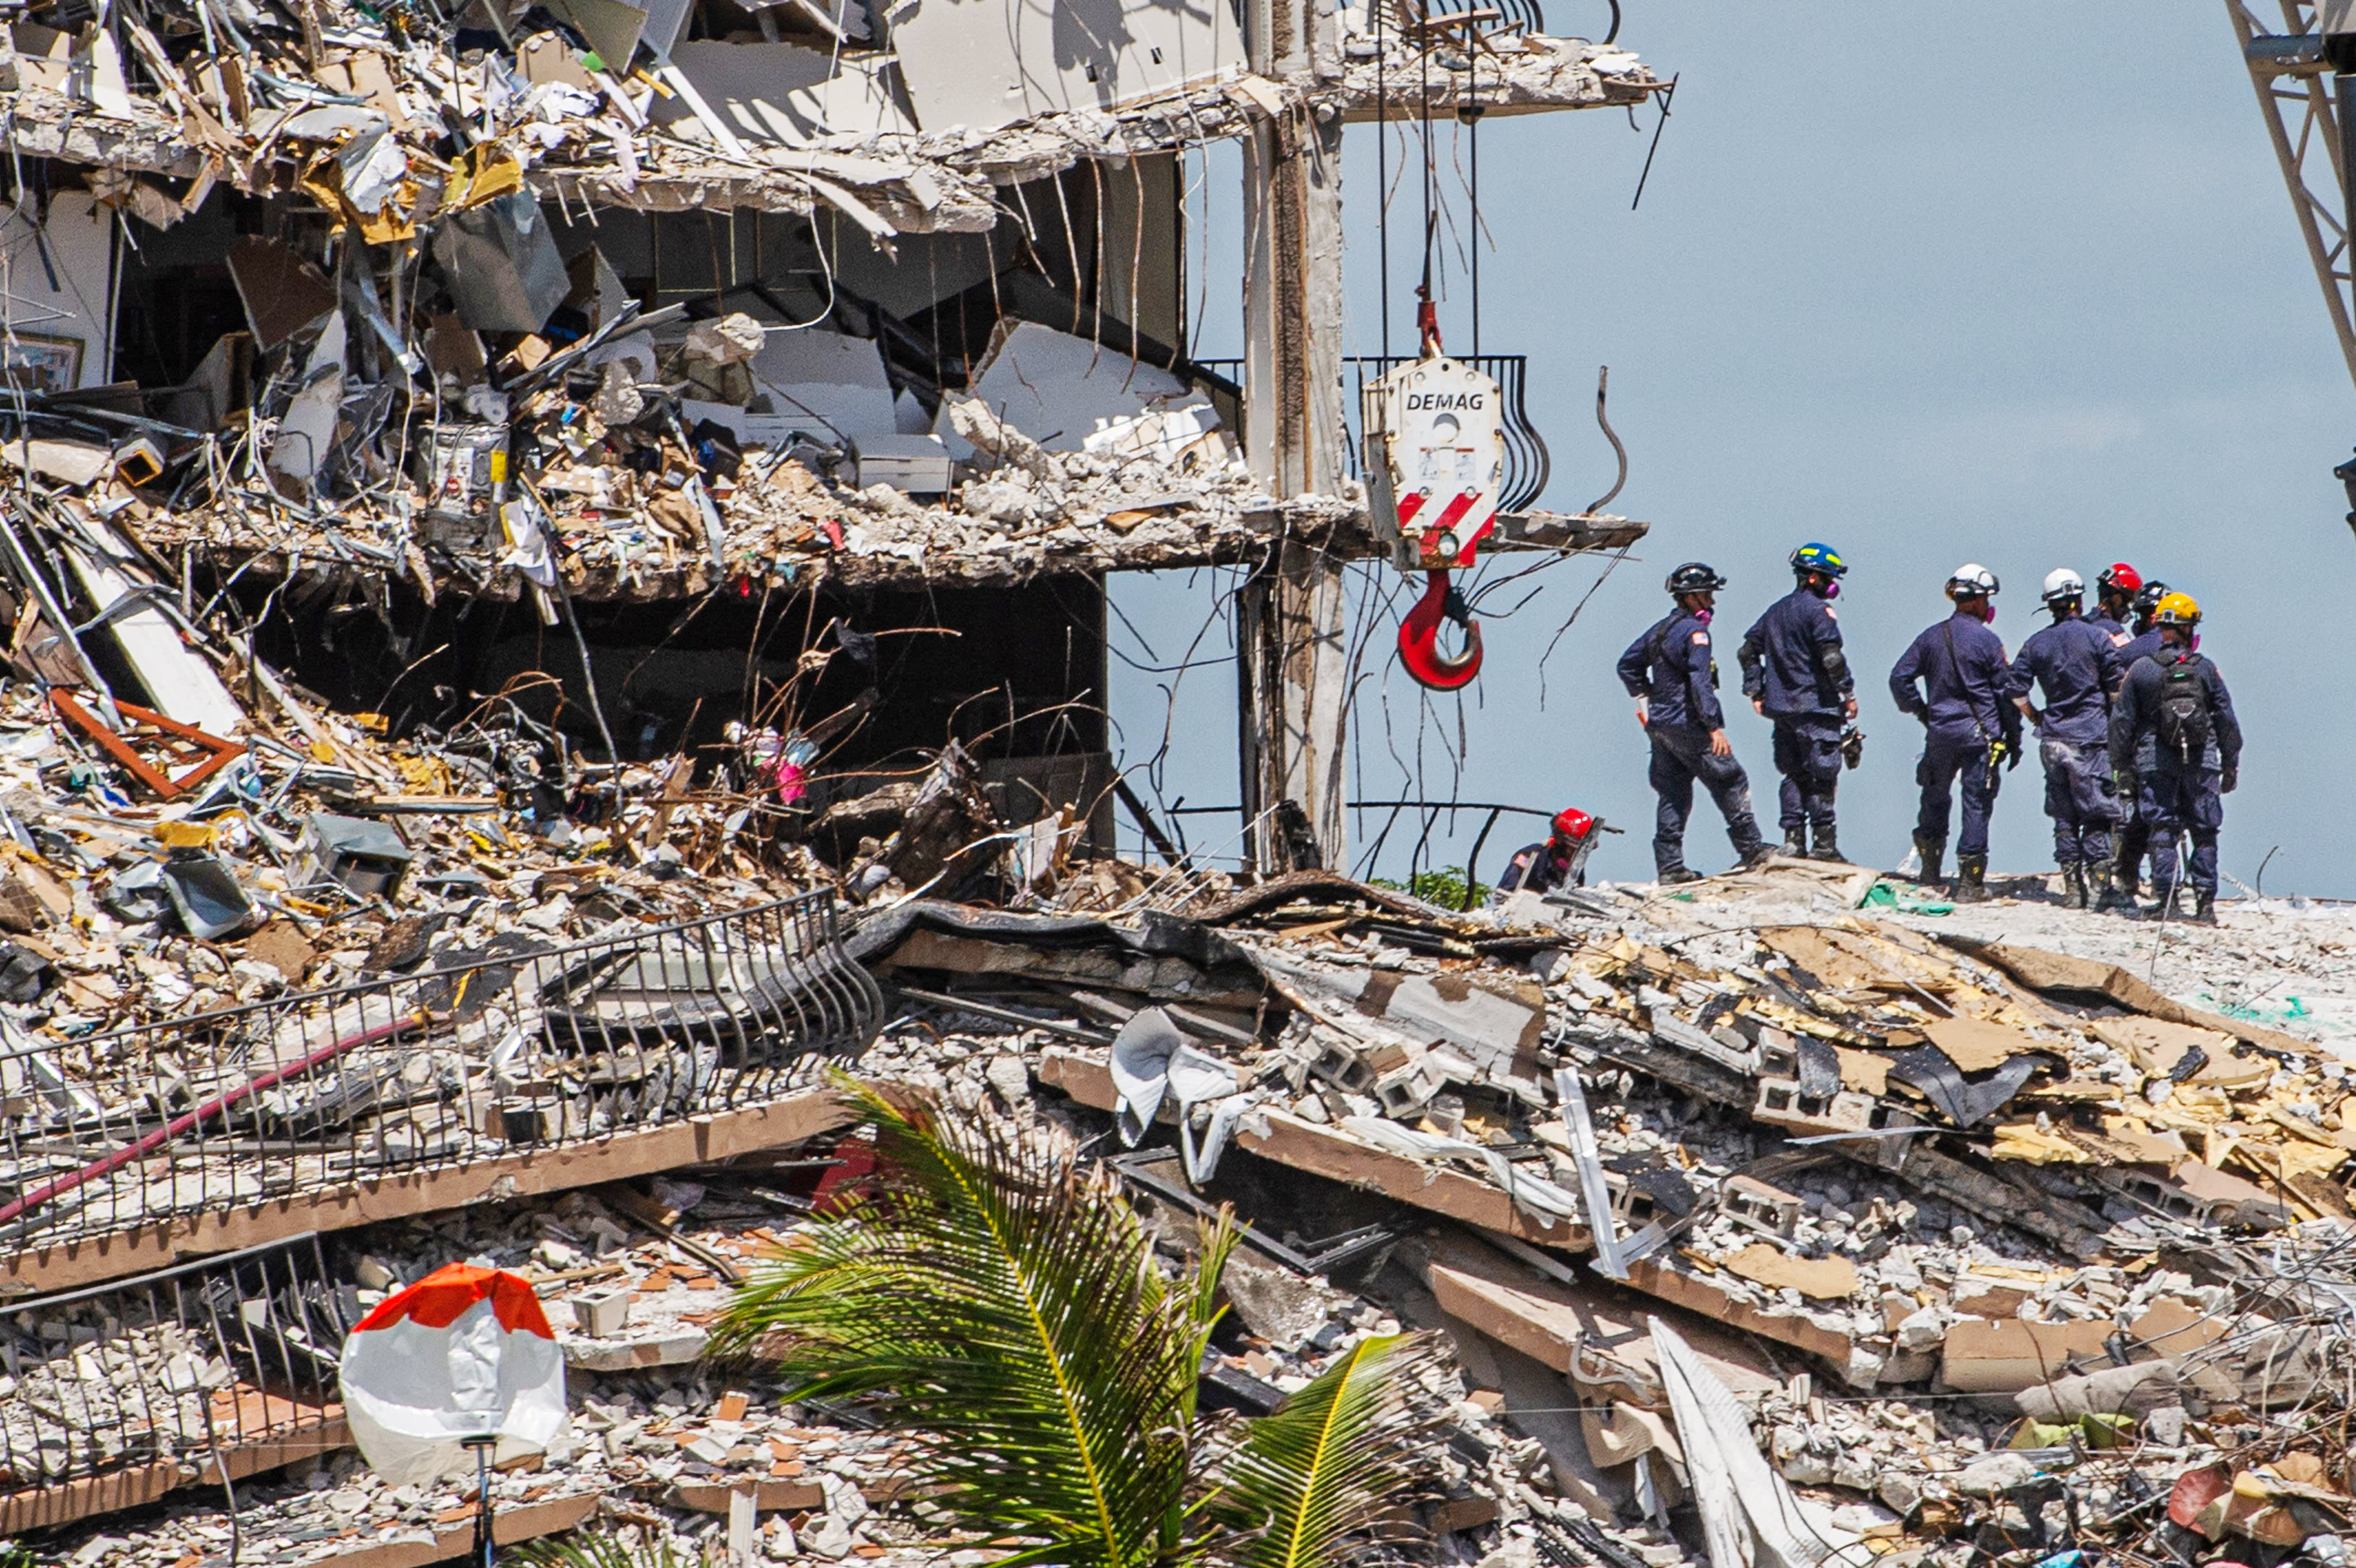 A minimum of 9 dead, 152 unaccounted for in Florida condominium tower collapse thumbnail